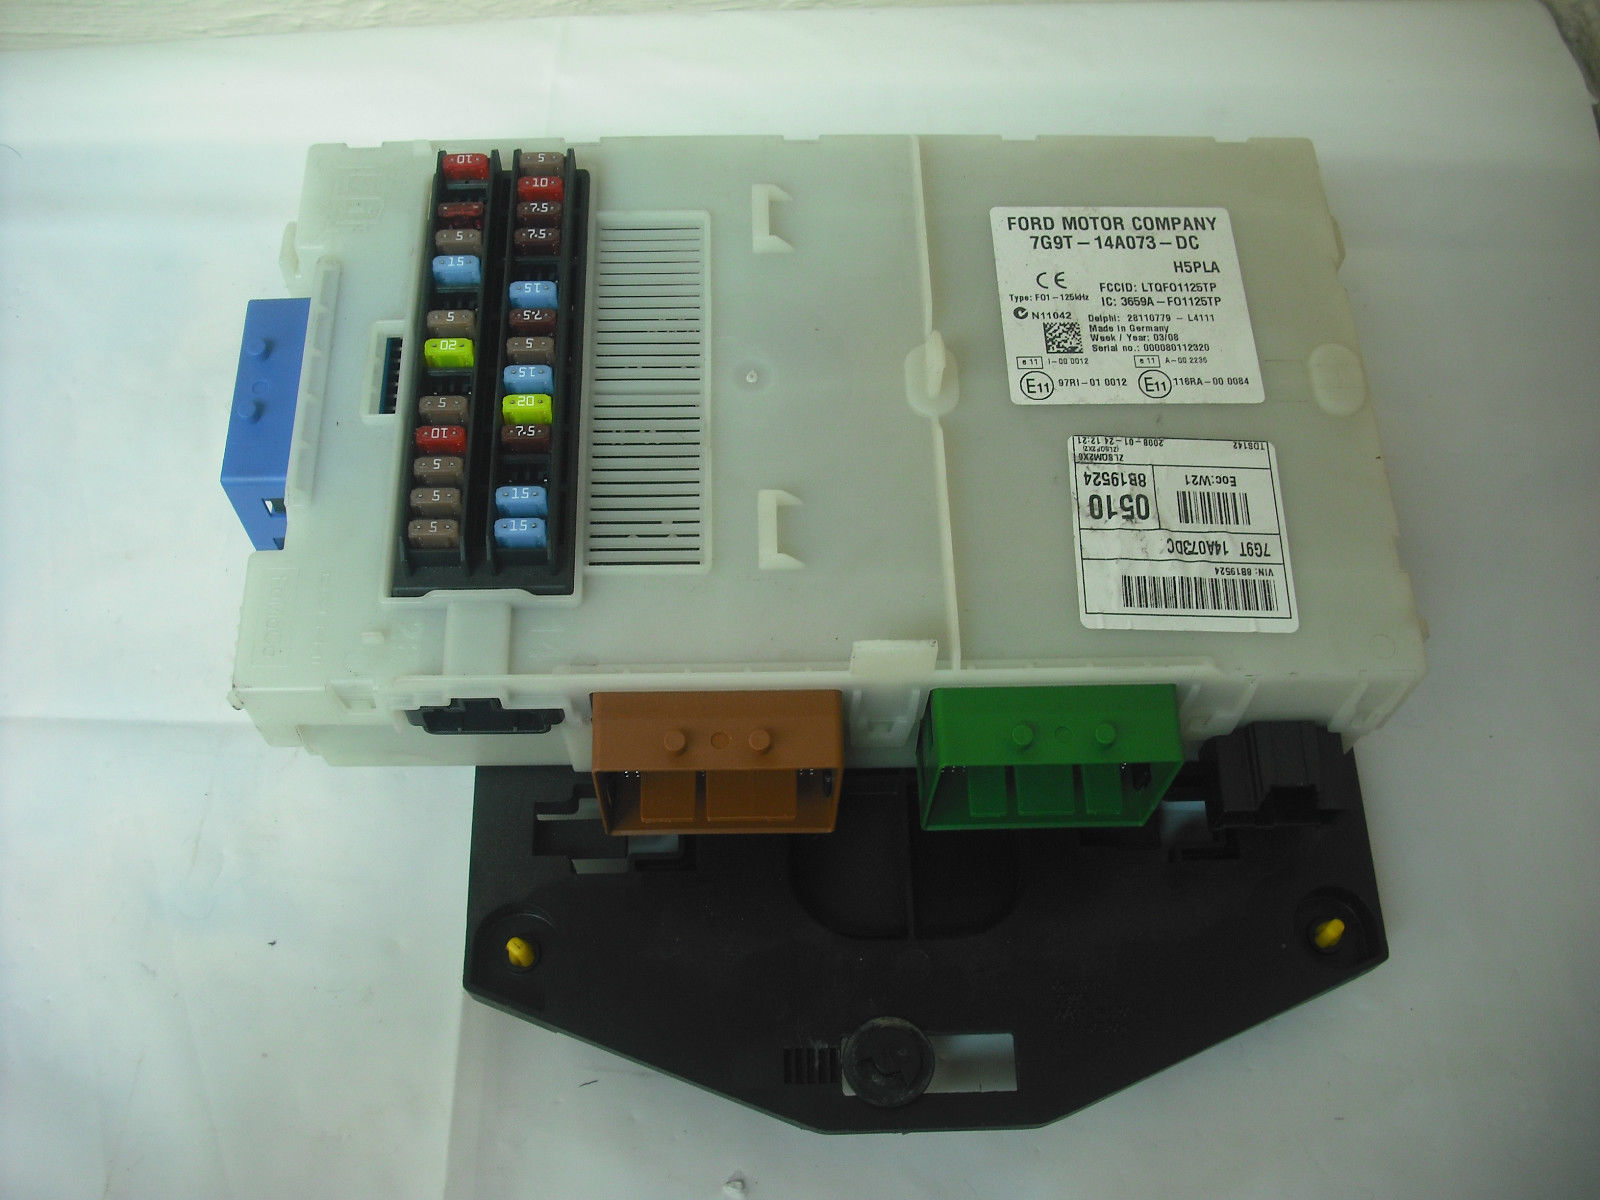 ford galaxy mk3 s max 2.0 tdci fuse box ecu sam unit 7g9t 14a073 dc 1485 p ford galaxy mk3 s max 2 0 tdci fuse box ecu sam unit 7g9t 14a073 dc ford galaxy mk3 fuse box location at panicattacktreatment.co